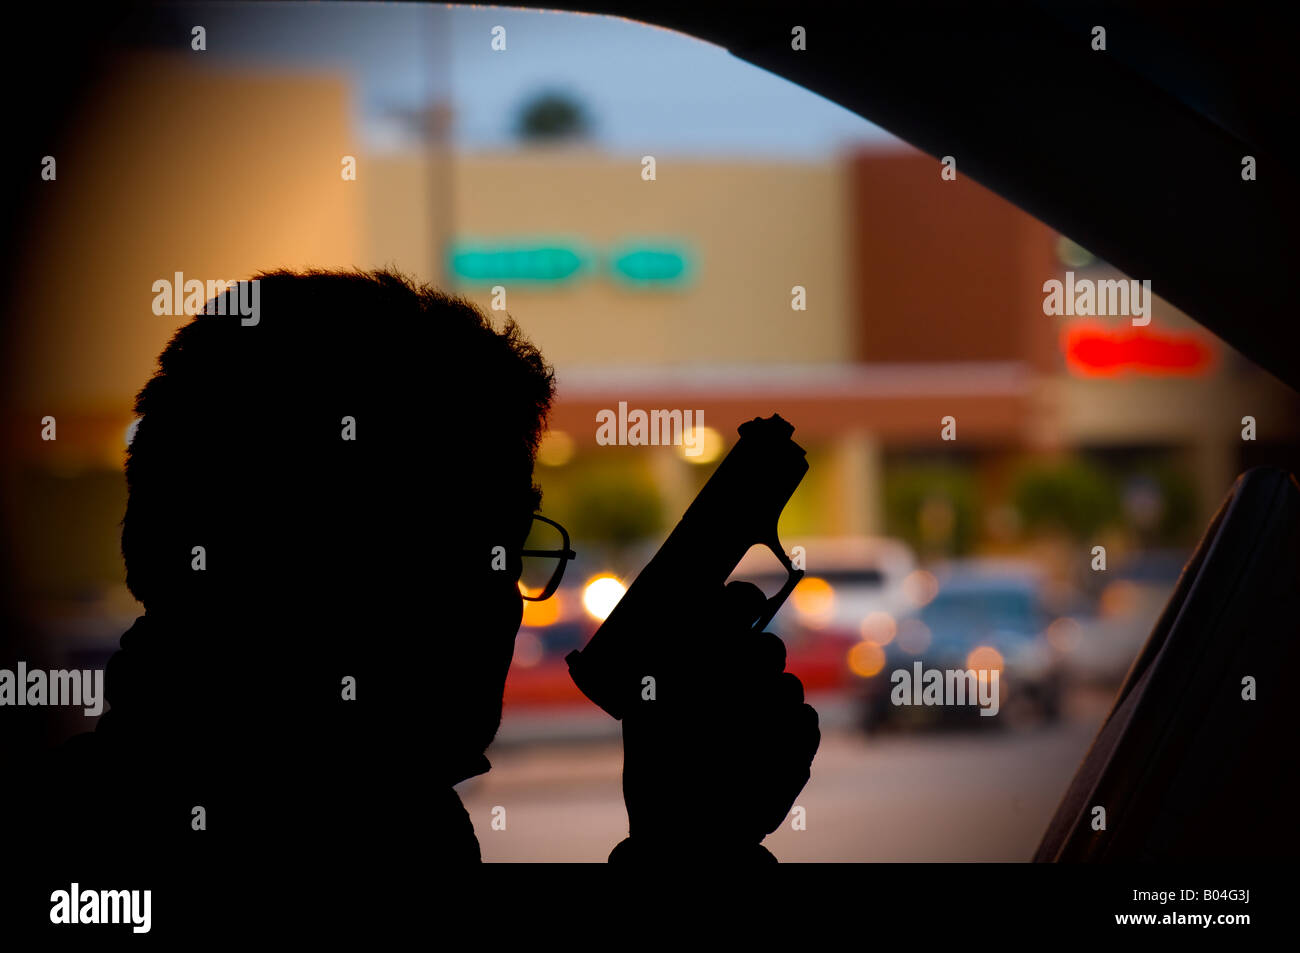 terrorist sniper with handgun parked at shopping mall at dusk - Stock Image